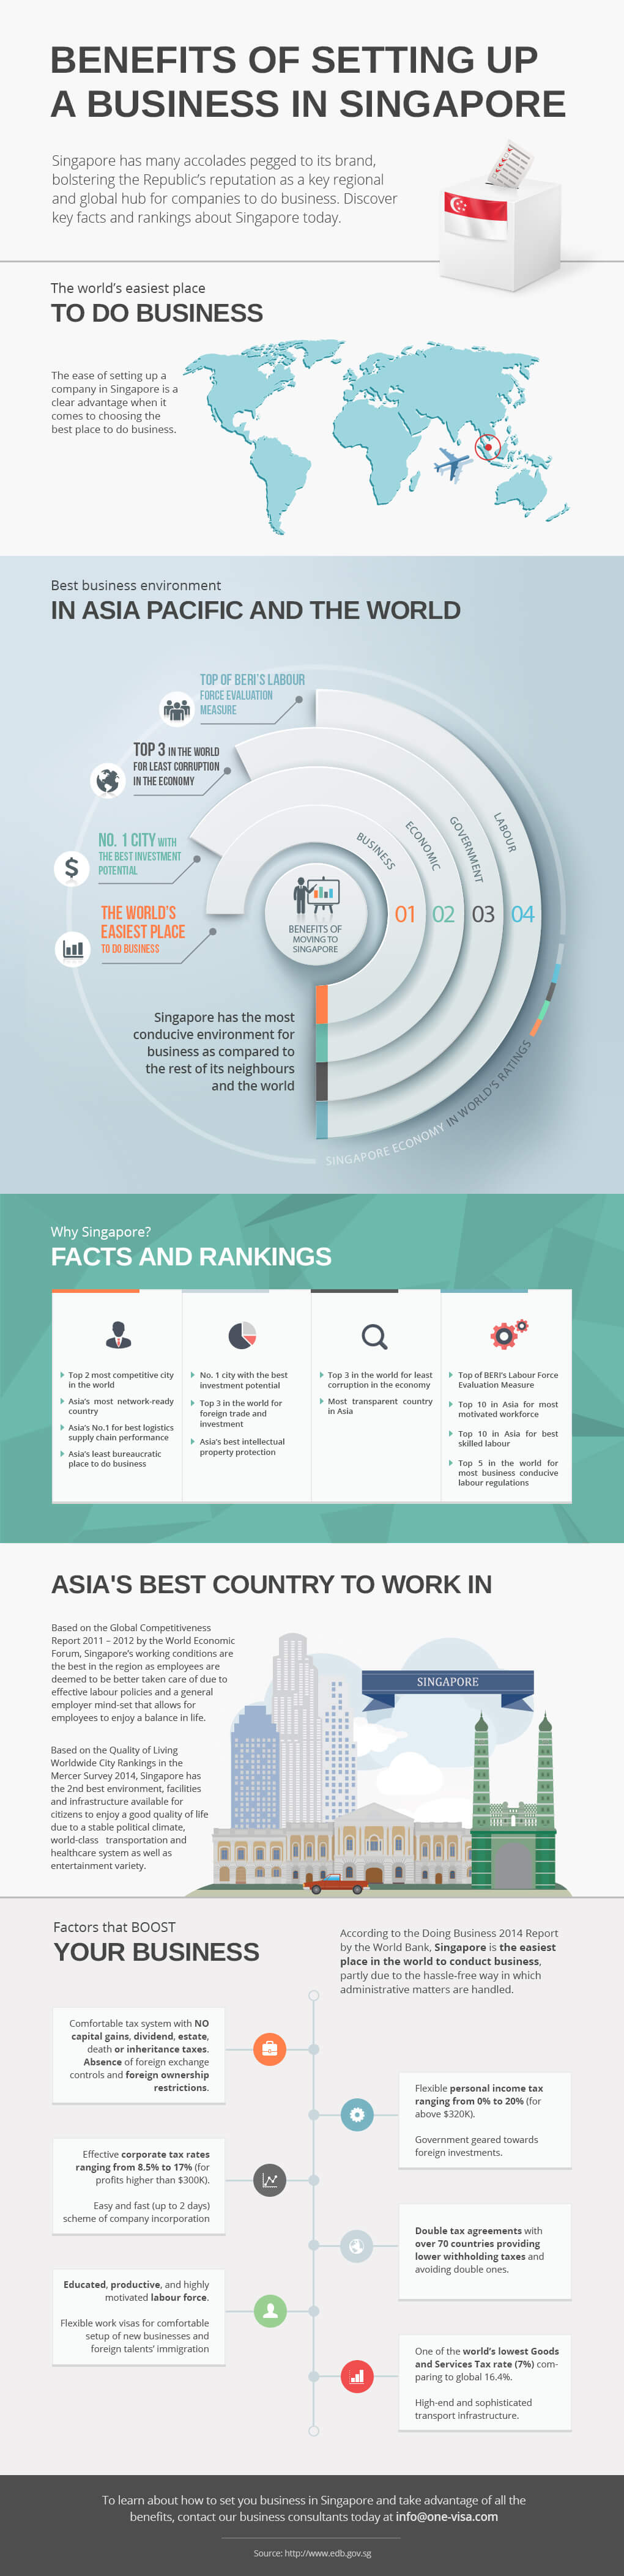 Benefit Of Setting Up A Business In Singapore